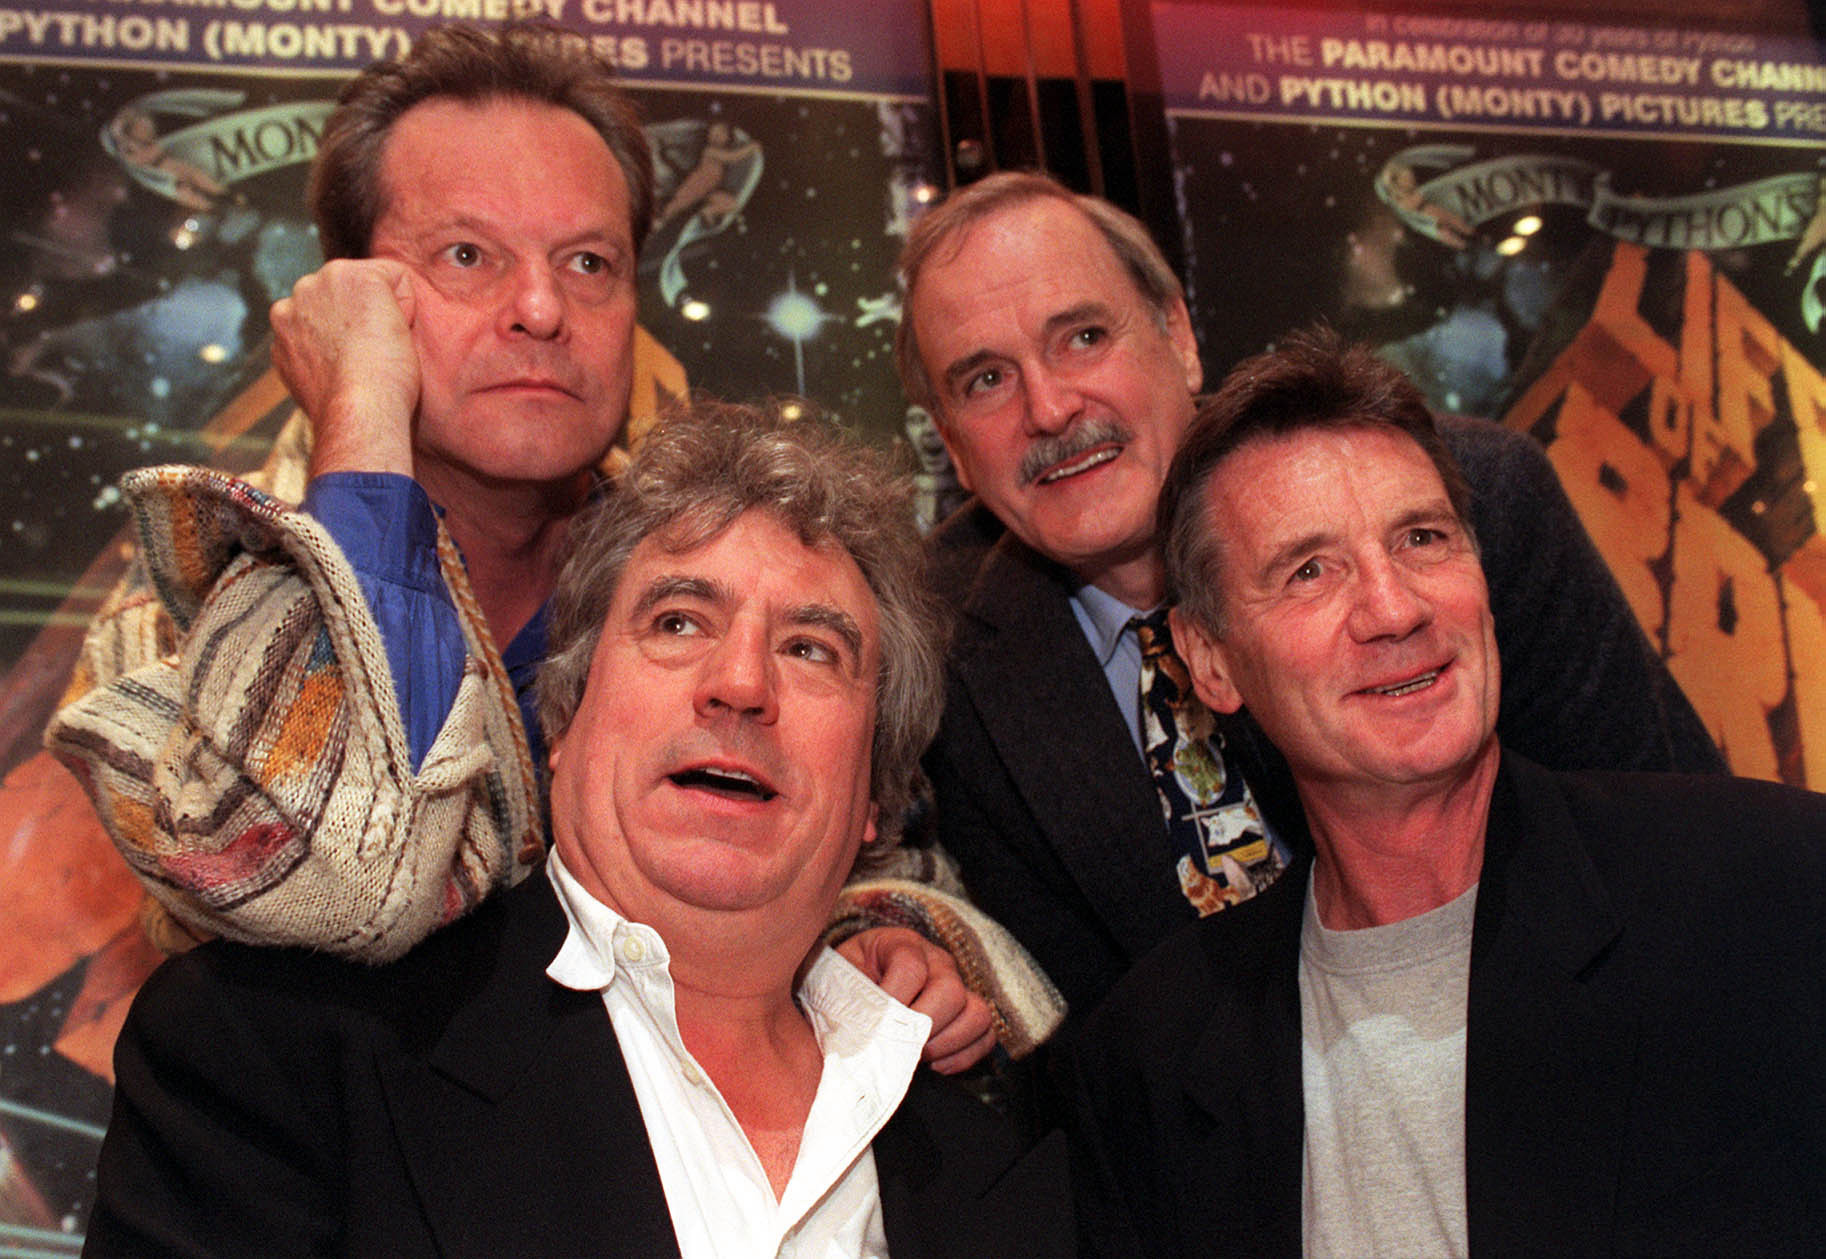 The Monty Python stars pose together in 1999